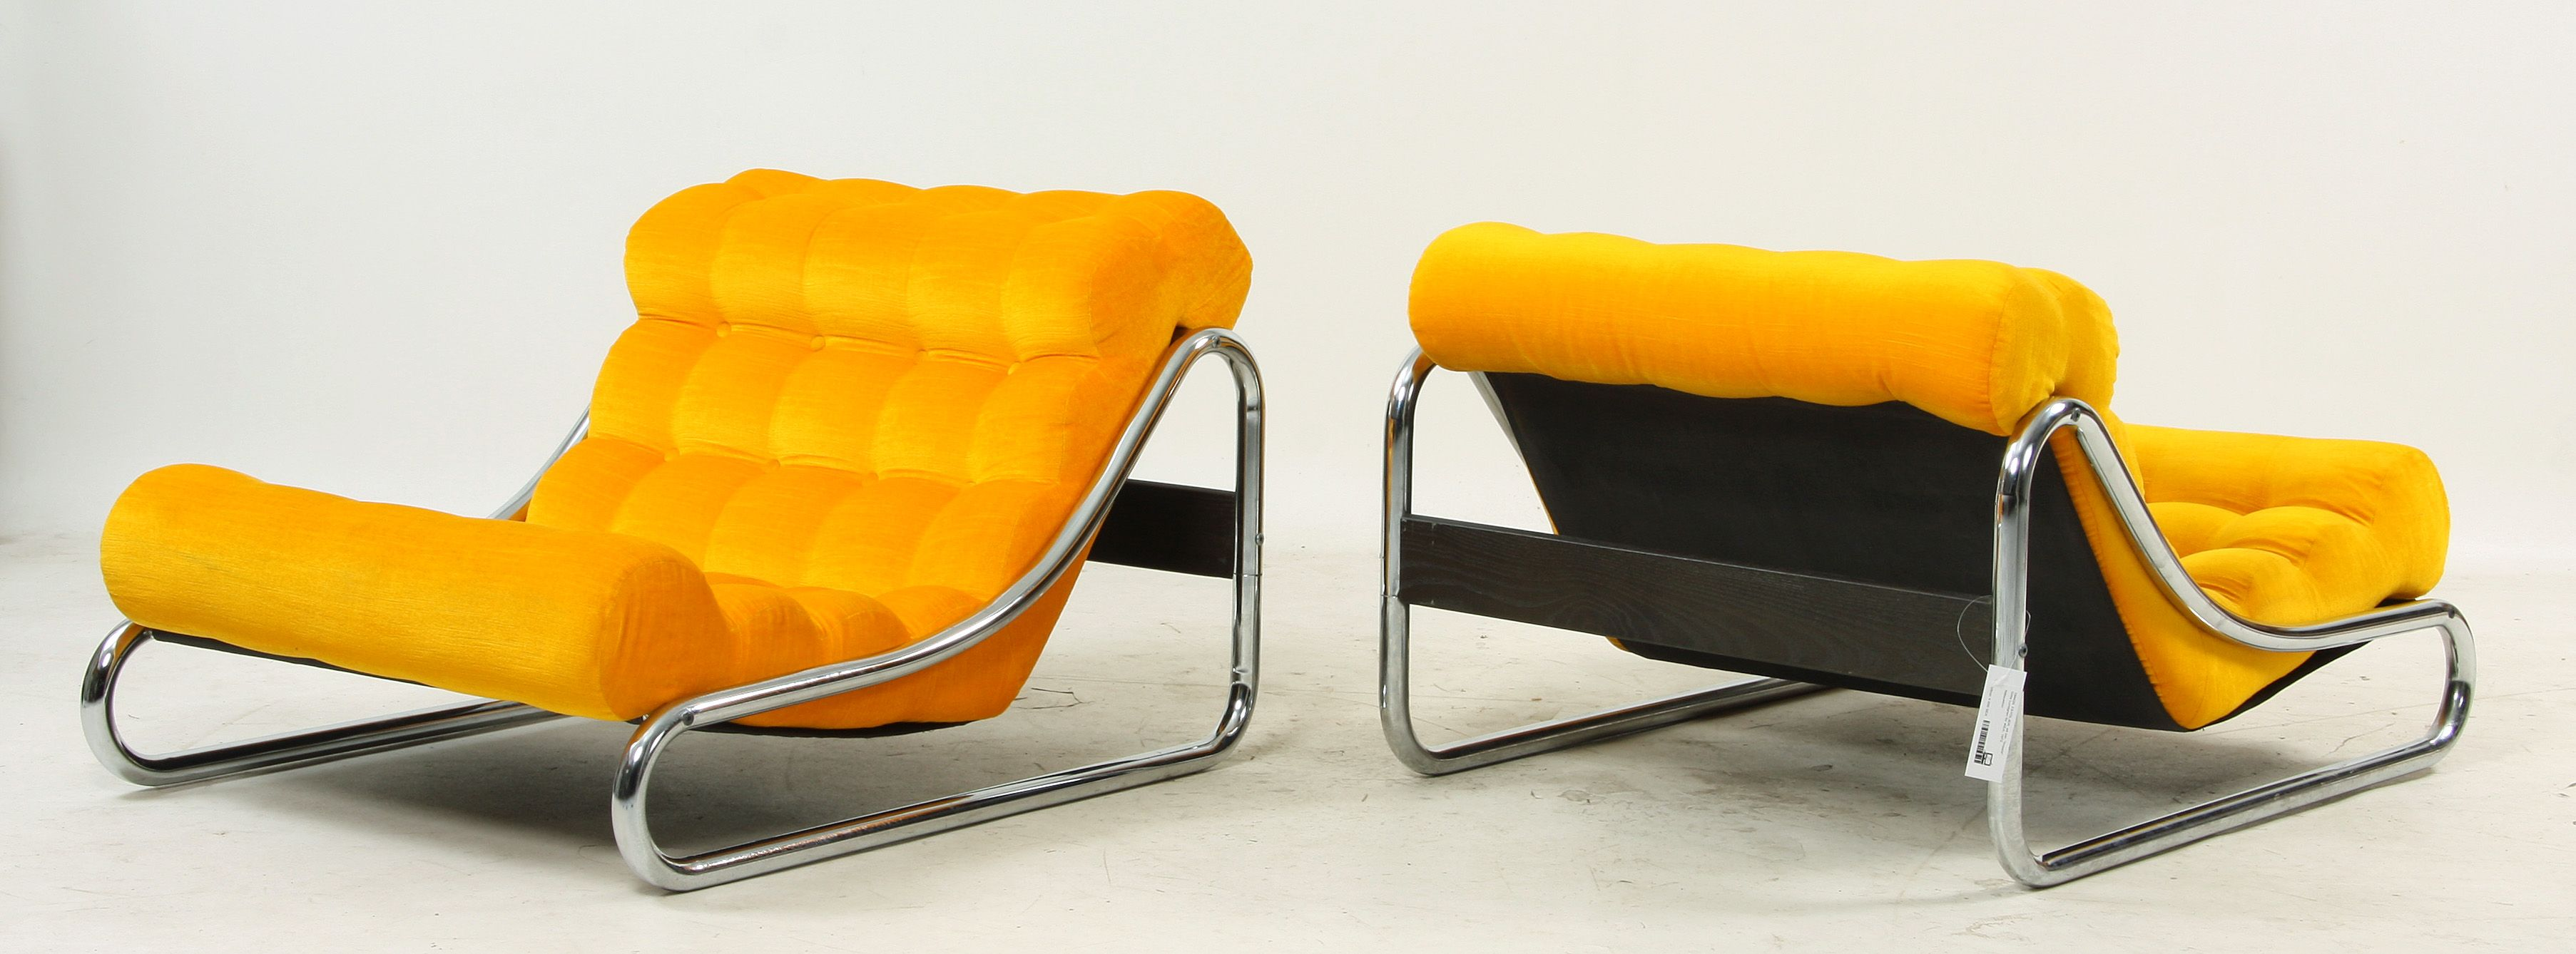 Vintage Ikea Furniture ikea retro impala chairs. <3<3<3 | yellow things | pinterest | impalas